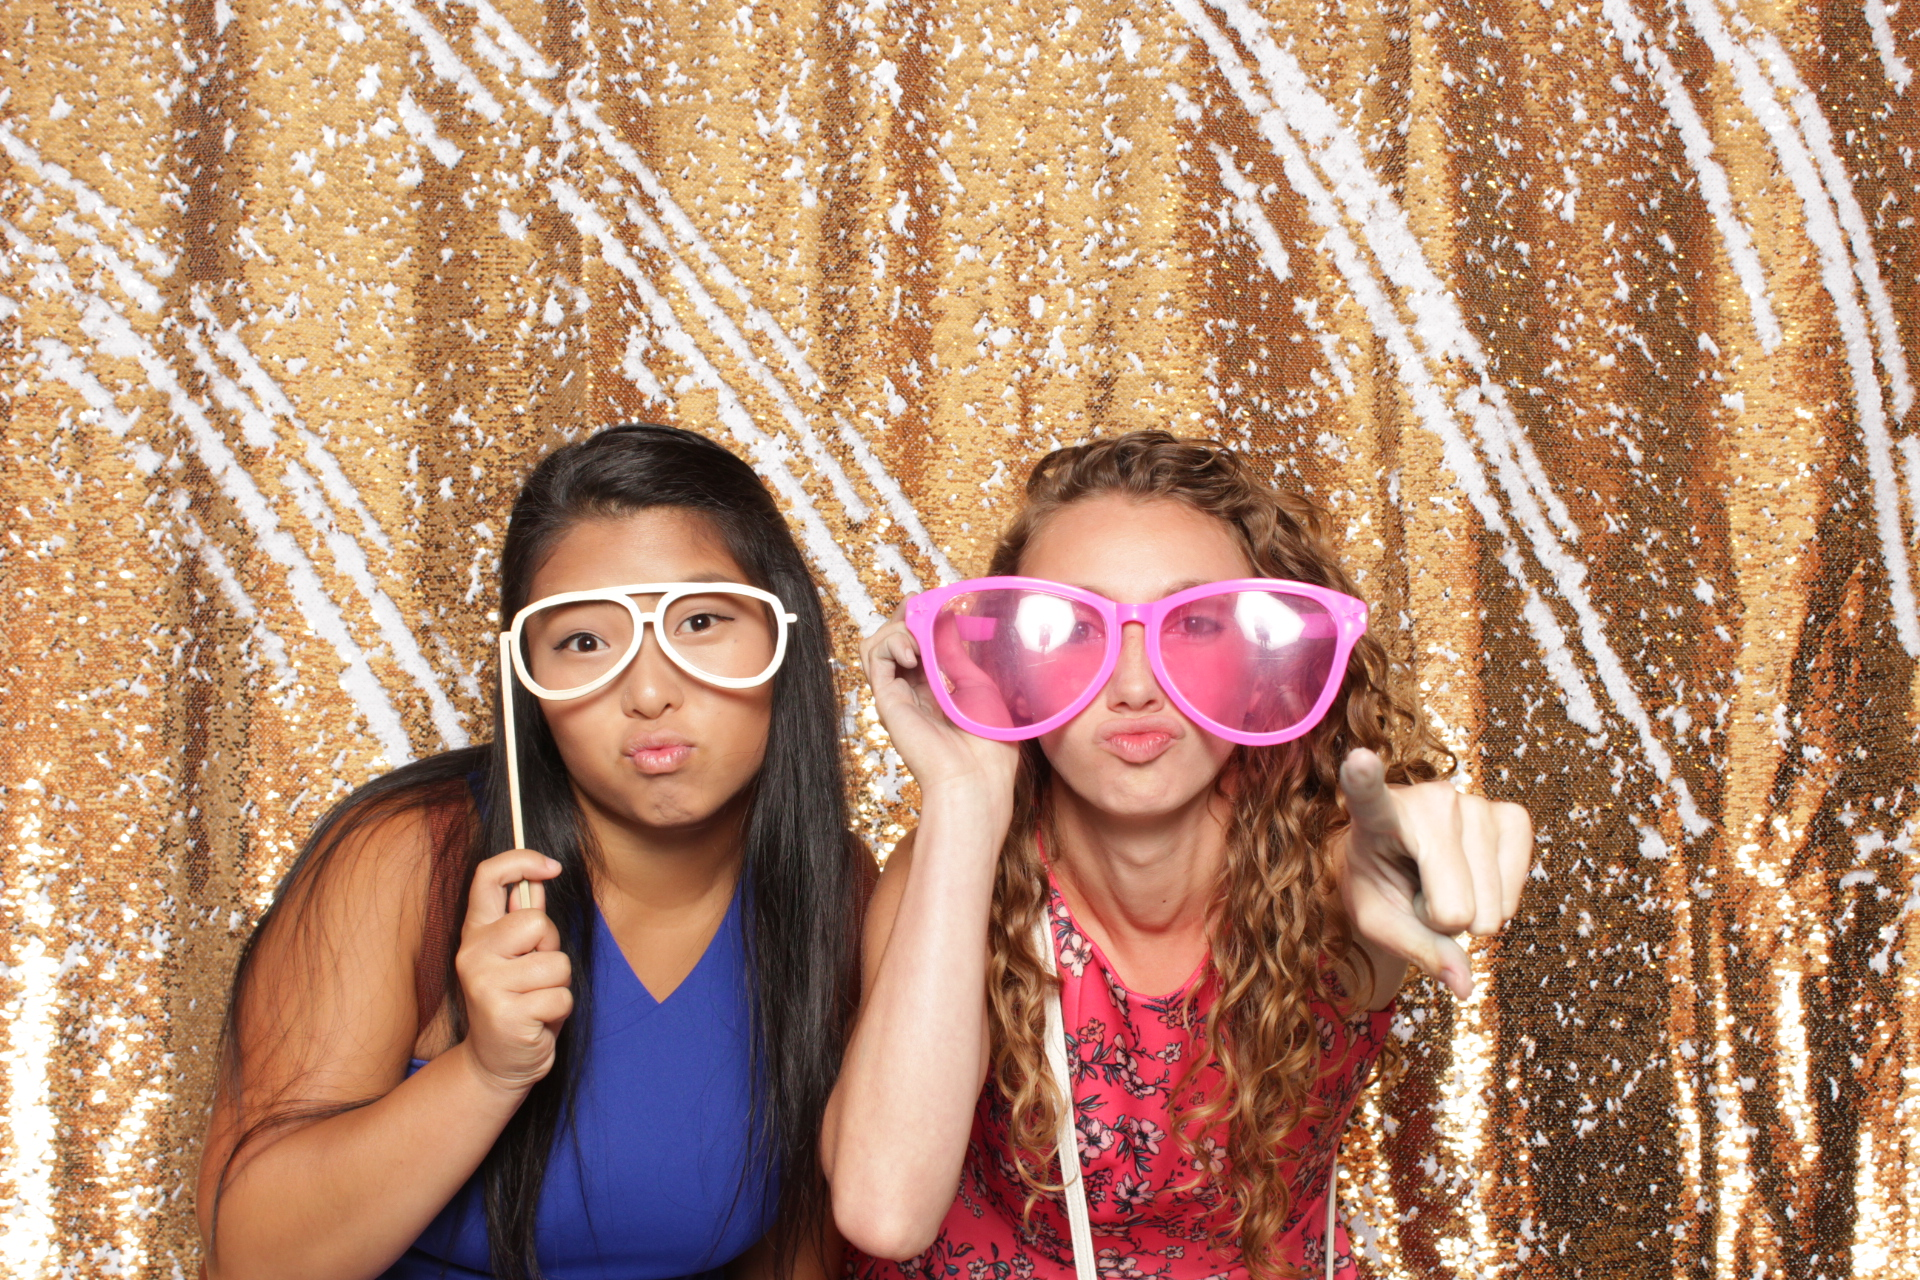 photo booth rental professionals